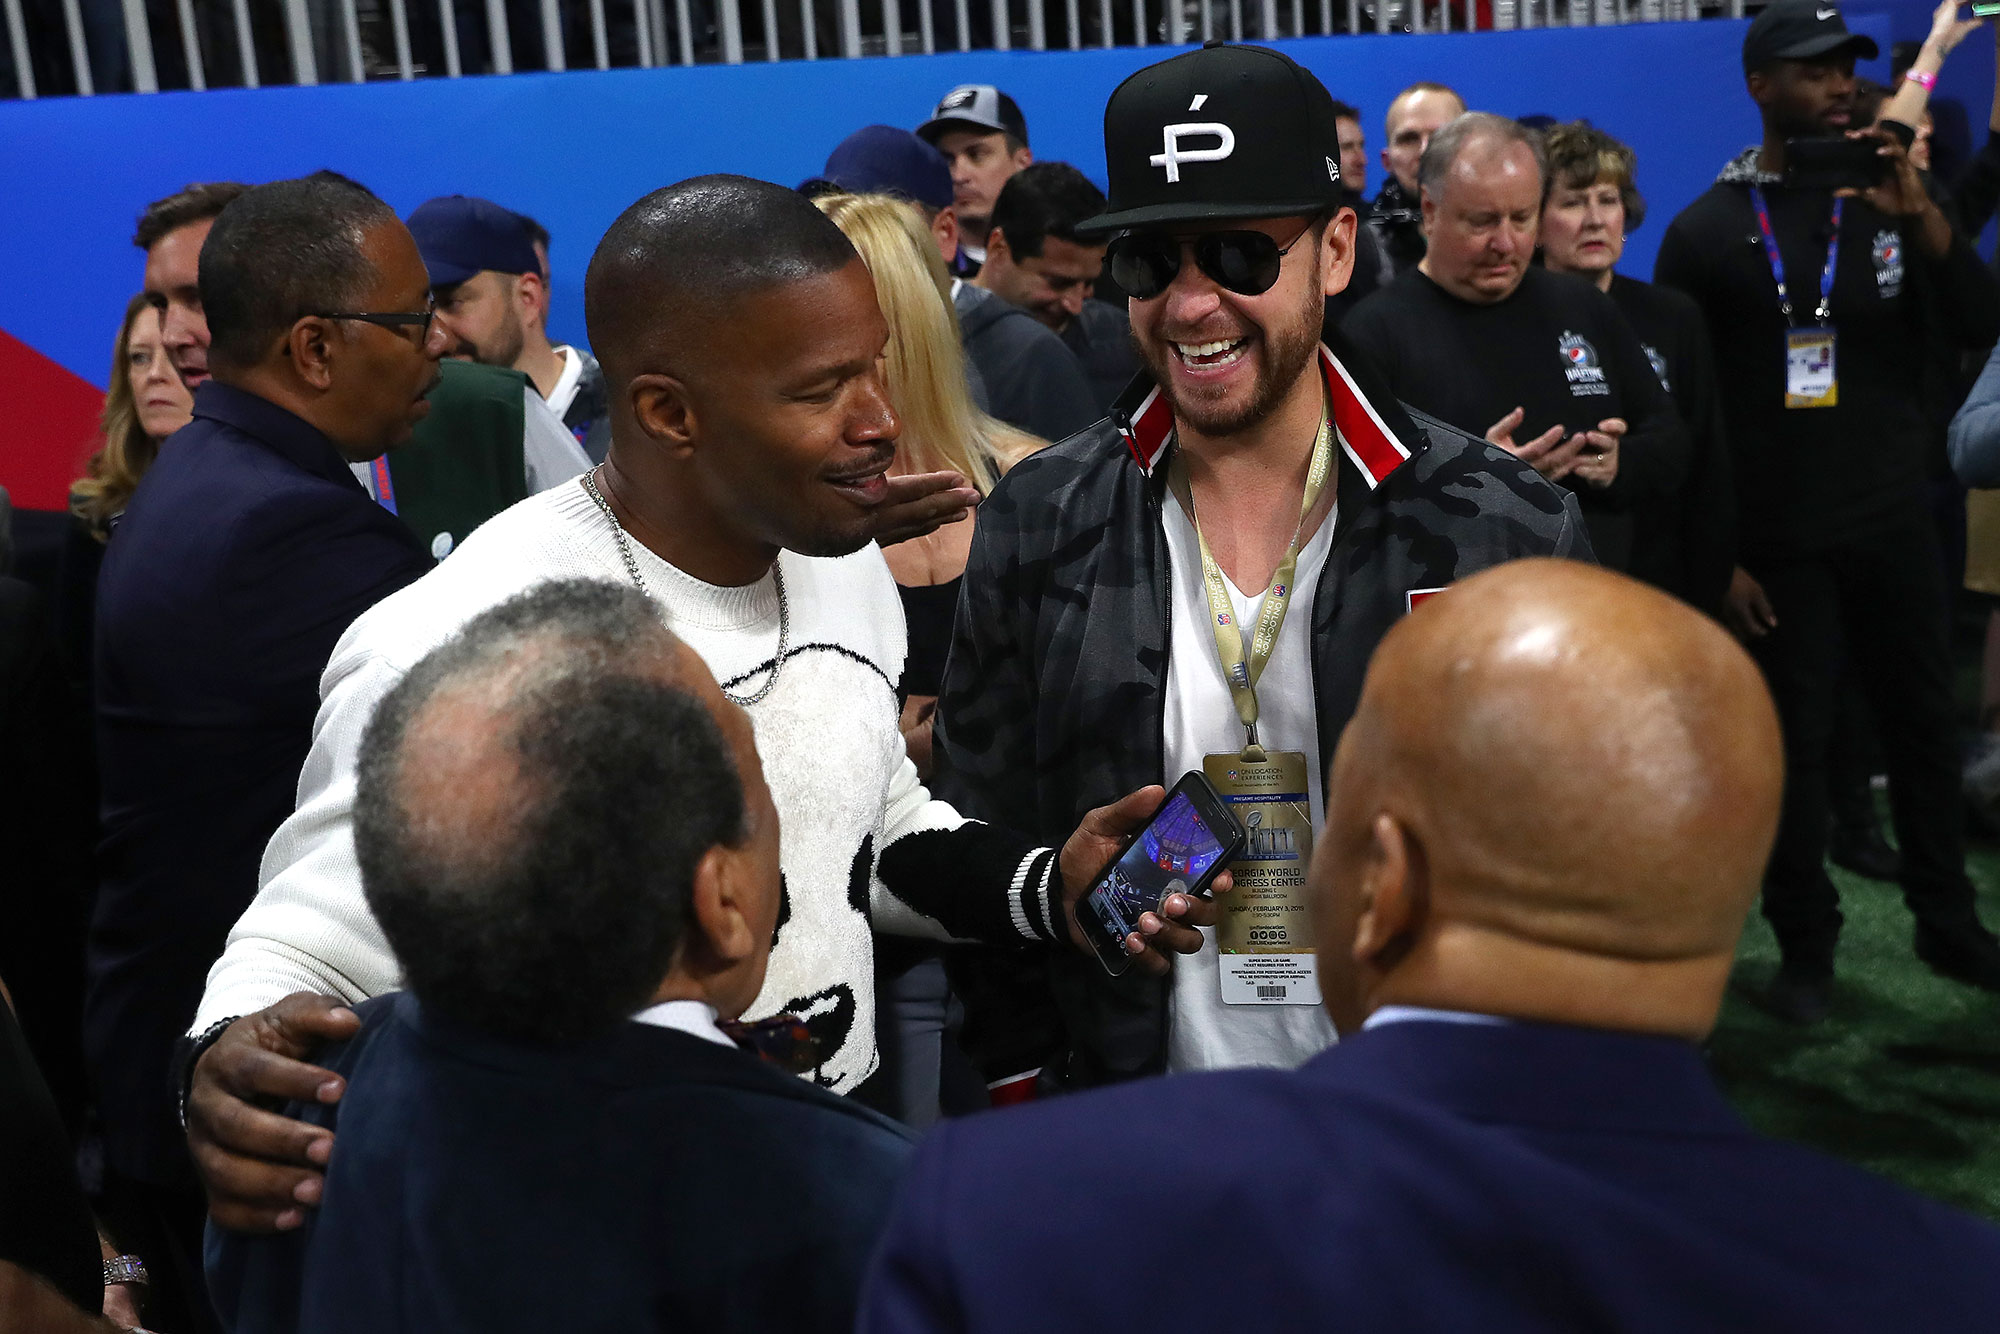 Gallery Super-Bowl-53-Jamie-Foxx - The actor-singer hung out with a group of people on the sidelines.